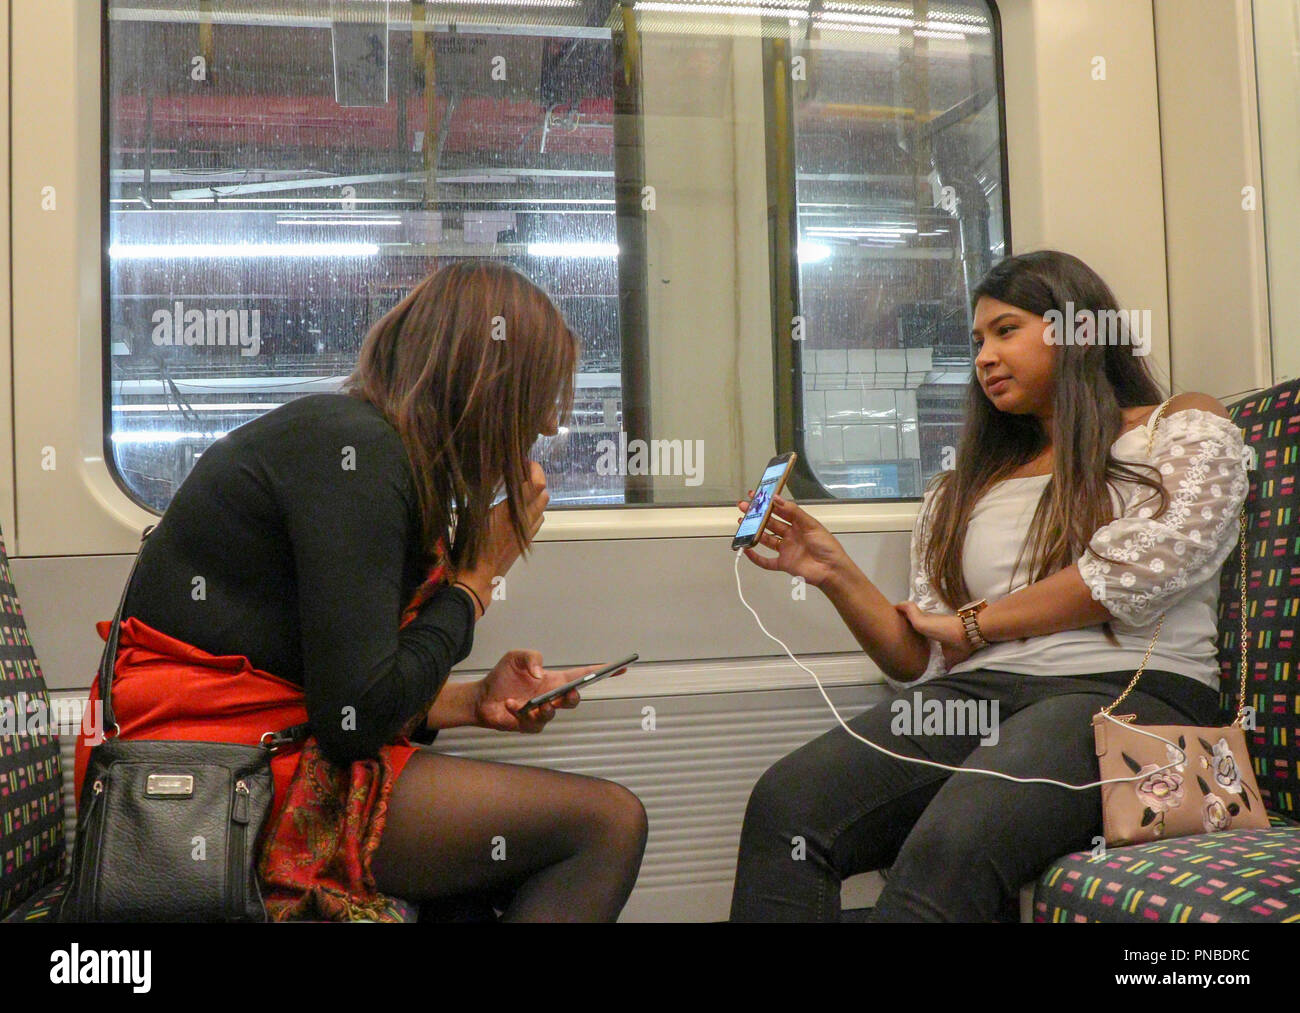 girl on London Underground train showing girlfriend mobile phone screen, England, UK Stock Photo